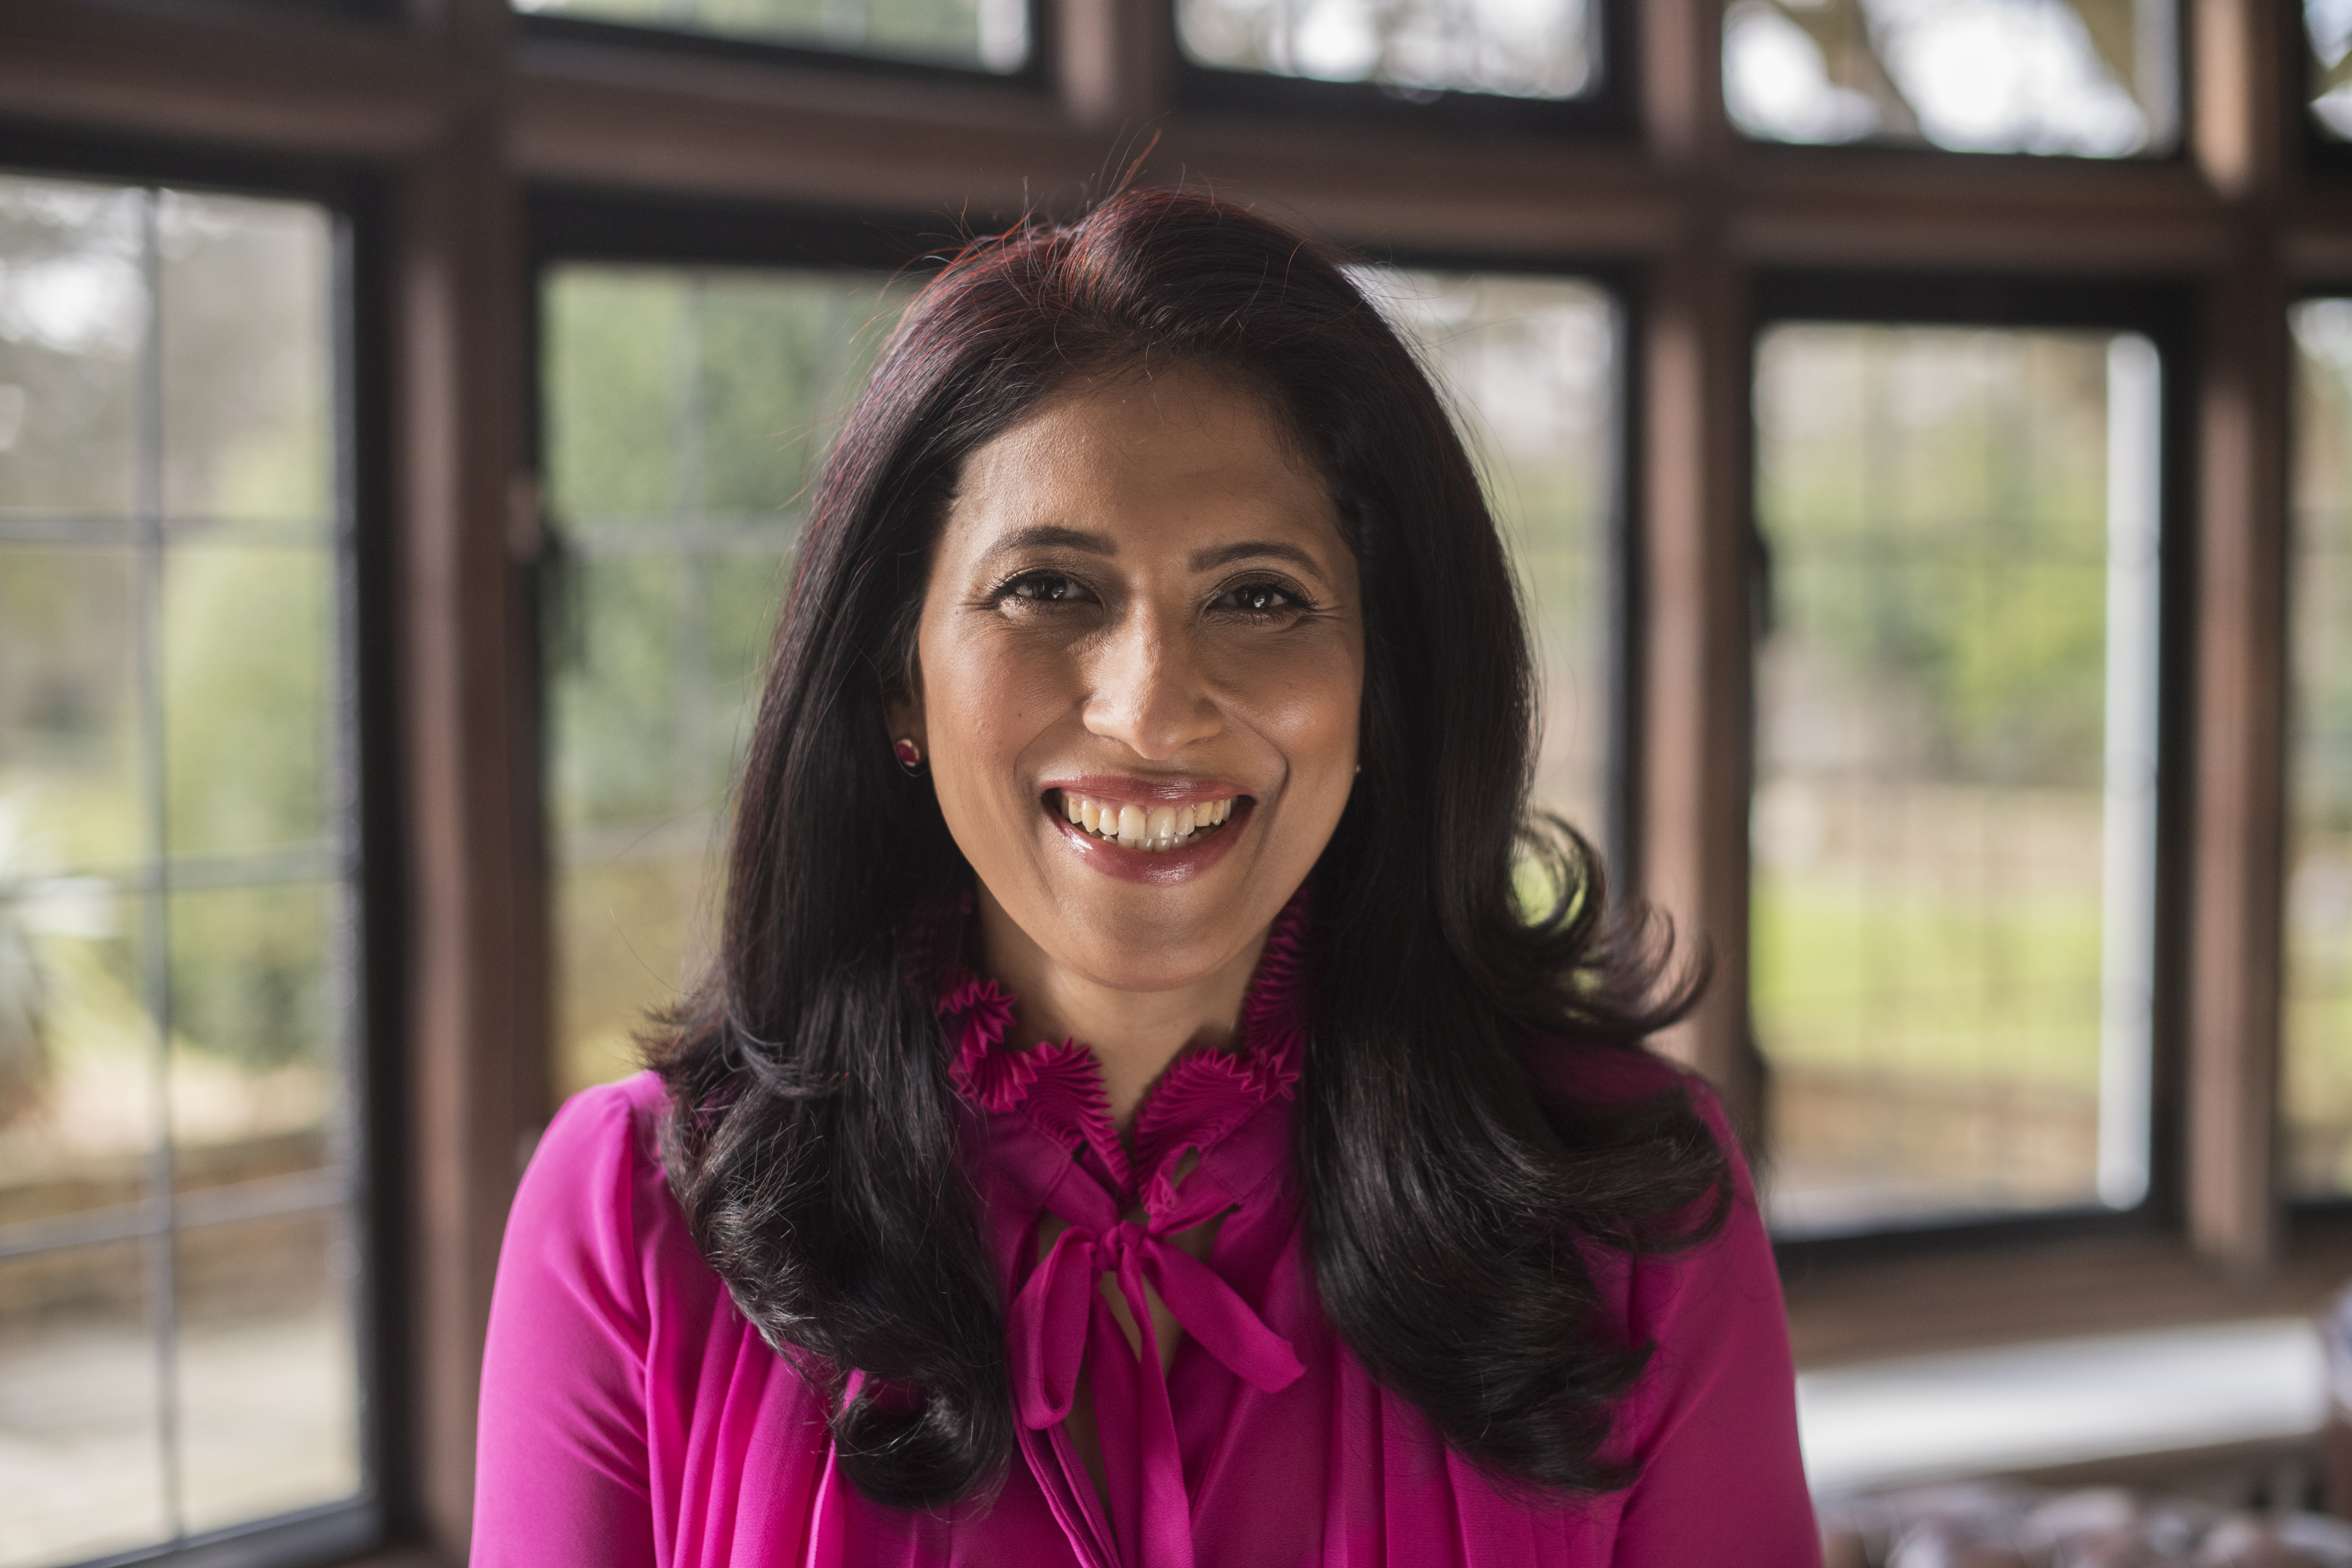 Leena Nair, Unilever's Chief Human Resources Officer